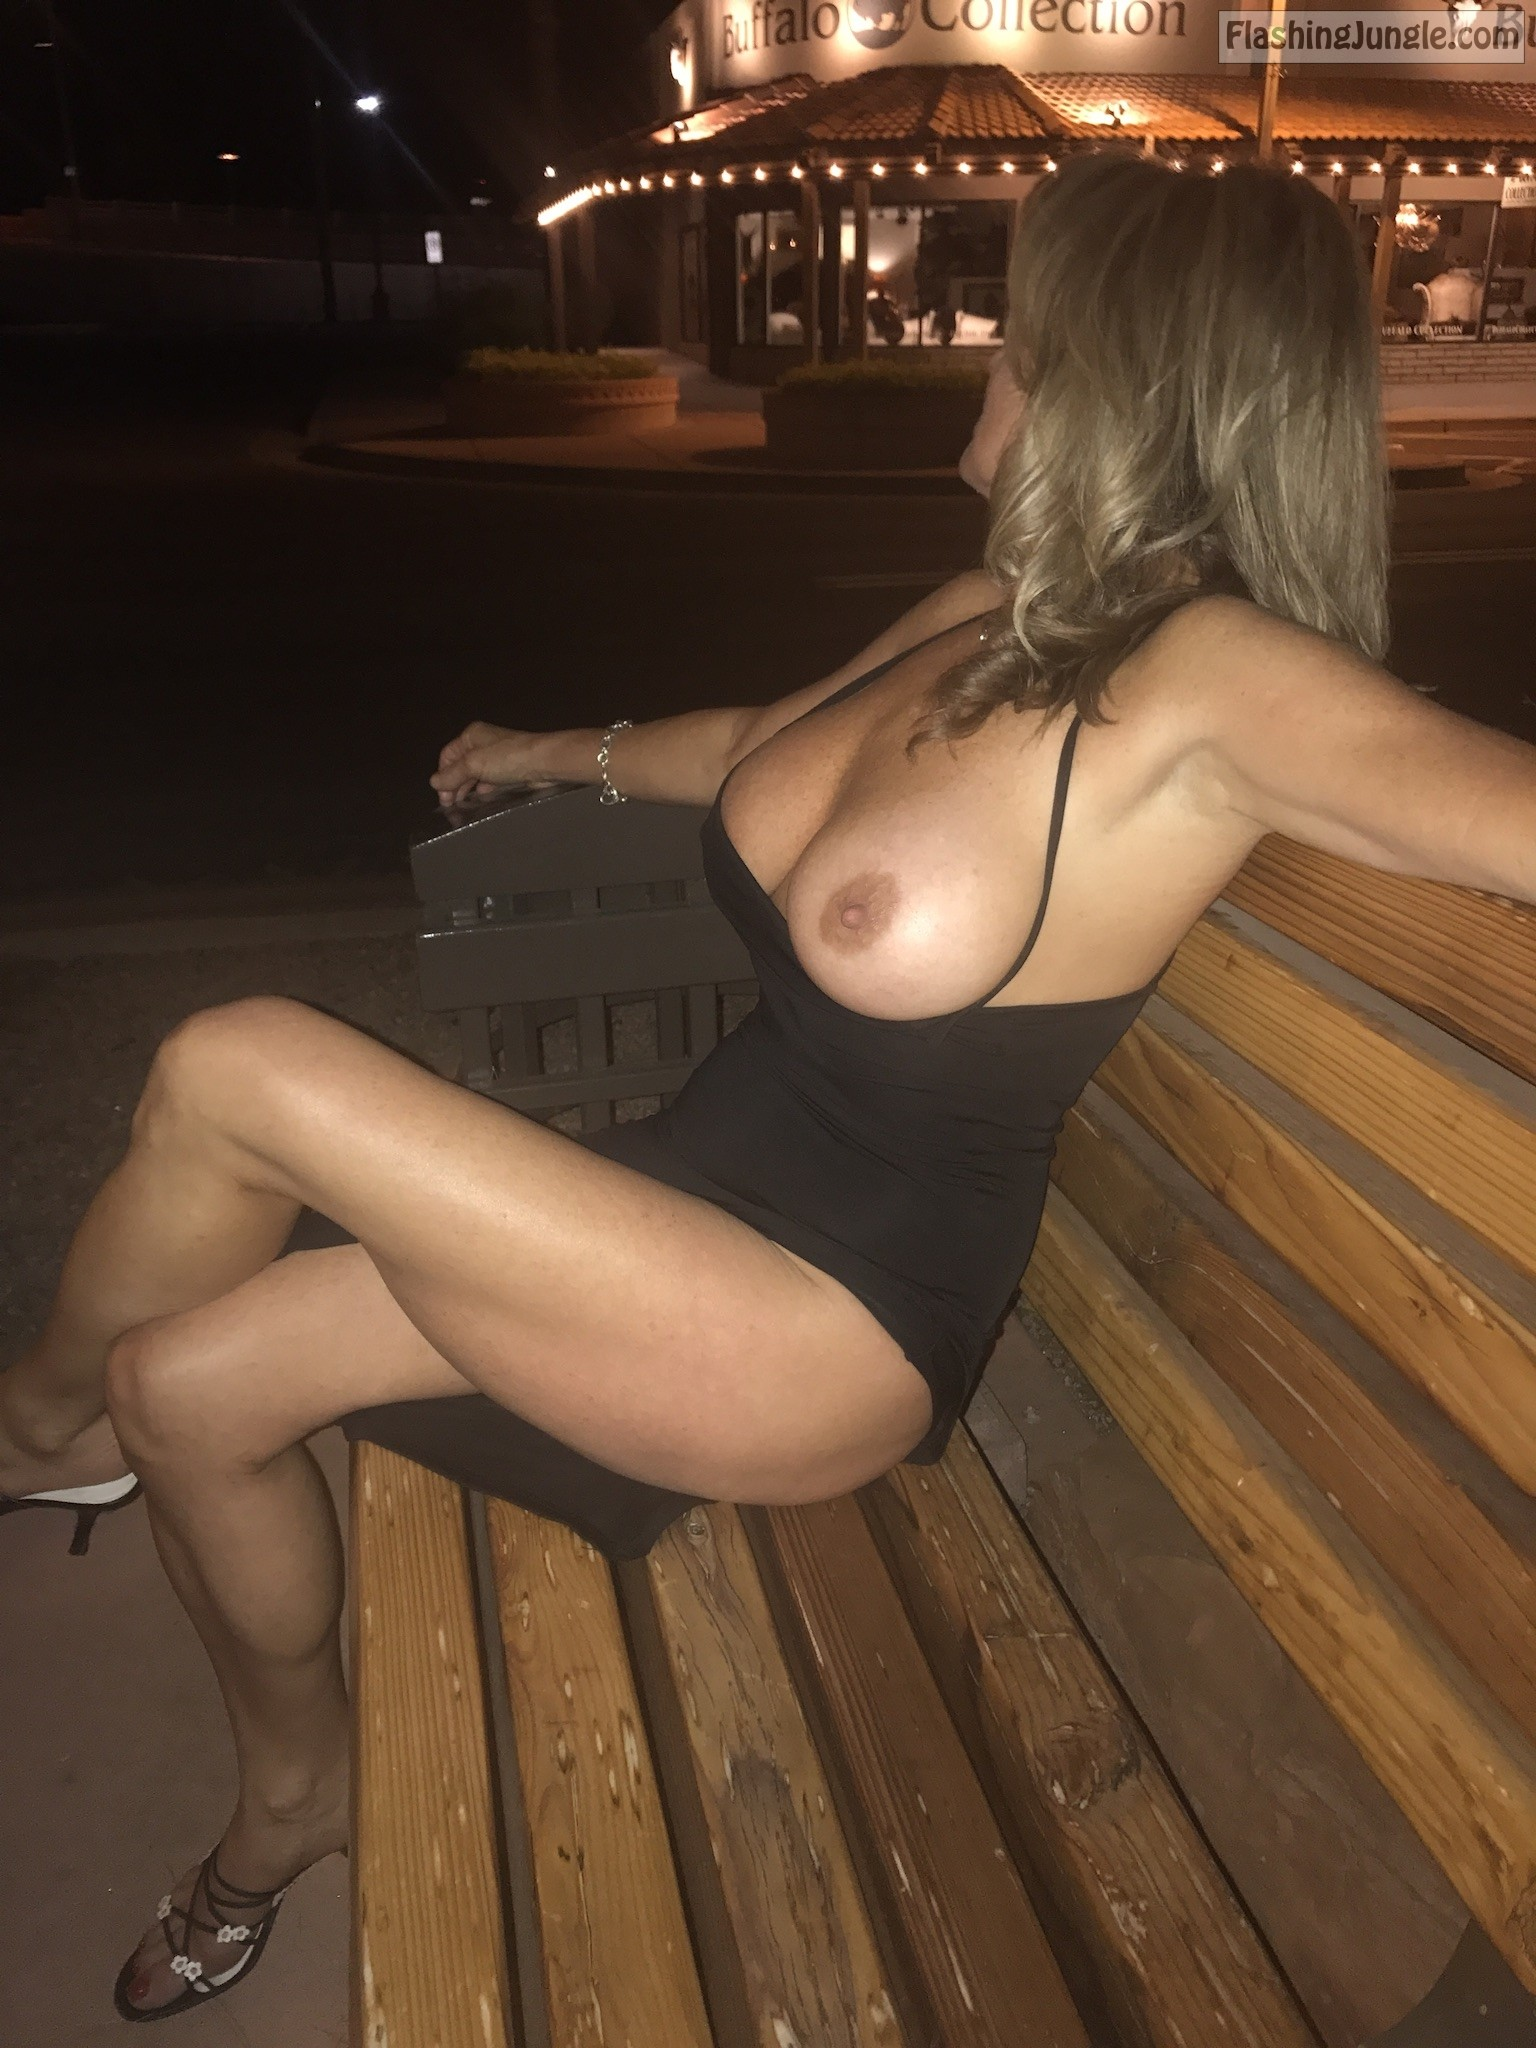 Johns sexy wife flashing boobs outdoors public flashing no panties mature howife boobs flash